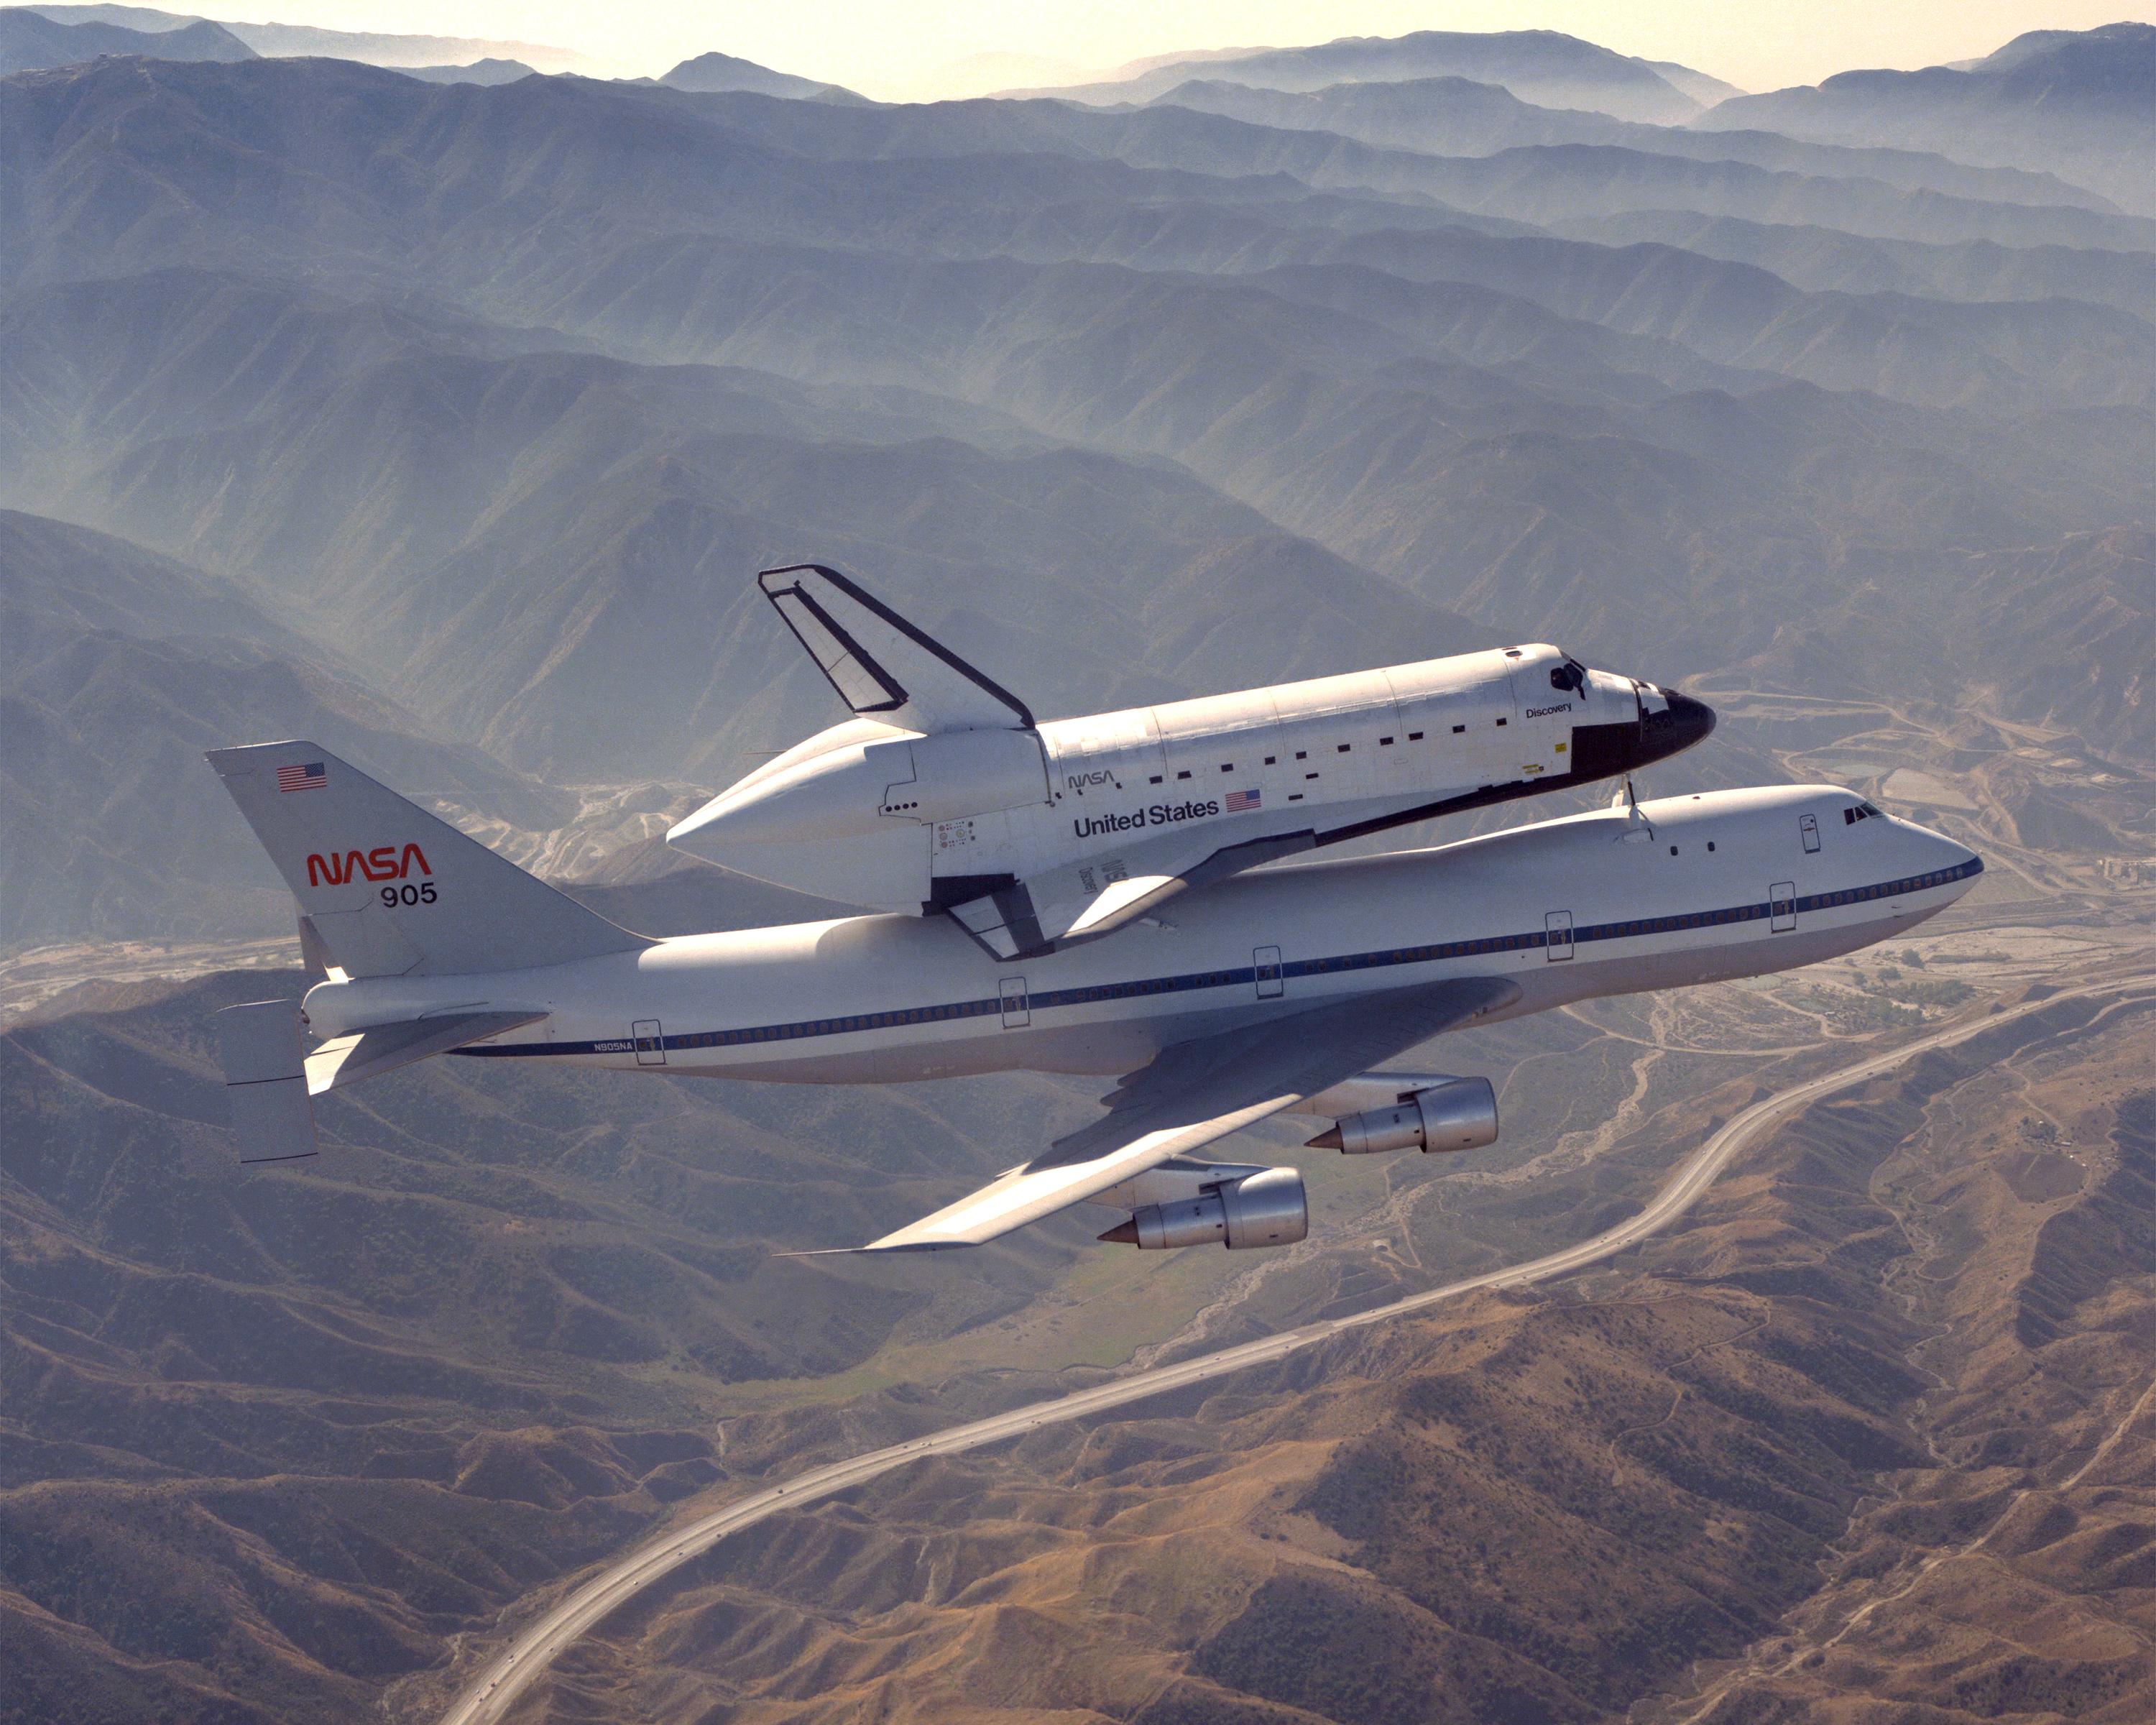 kelly afb space shuttle carrier aircraft - photo #38